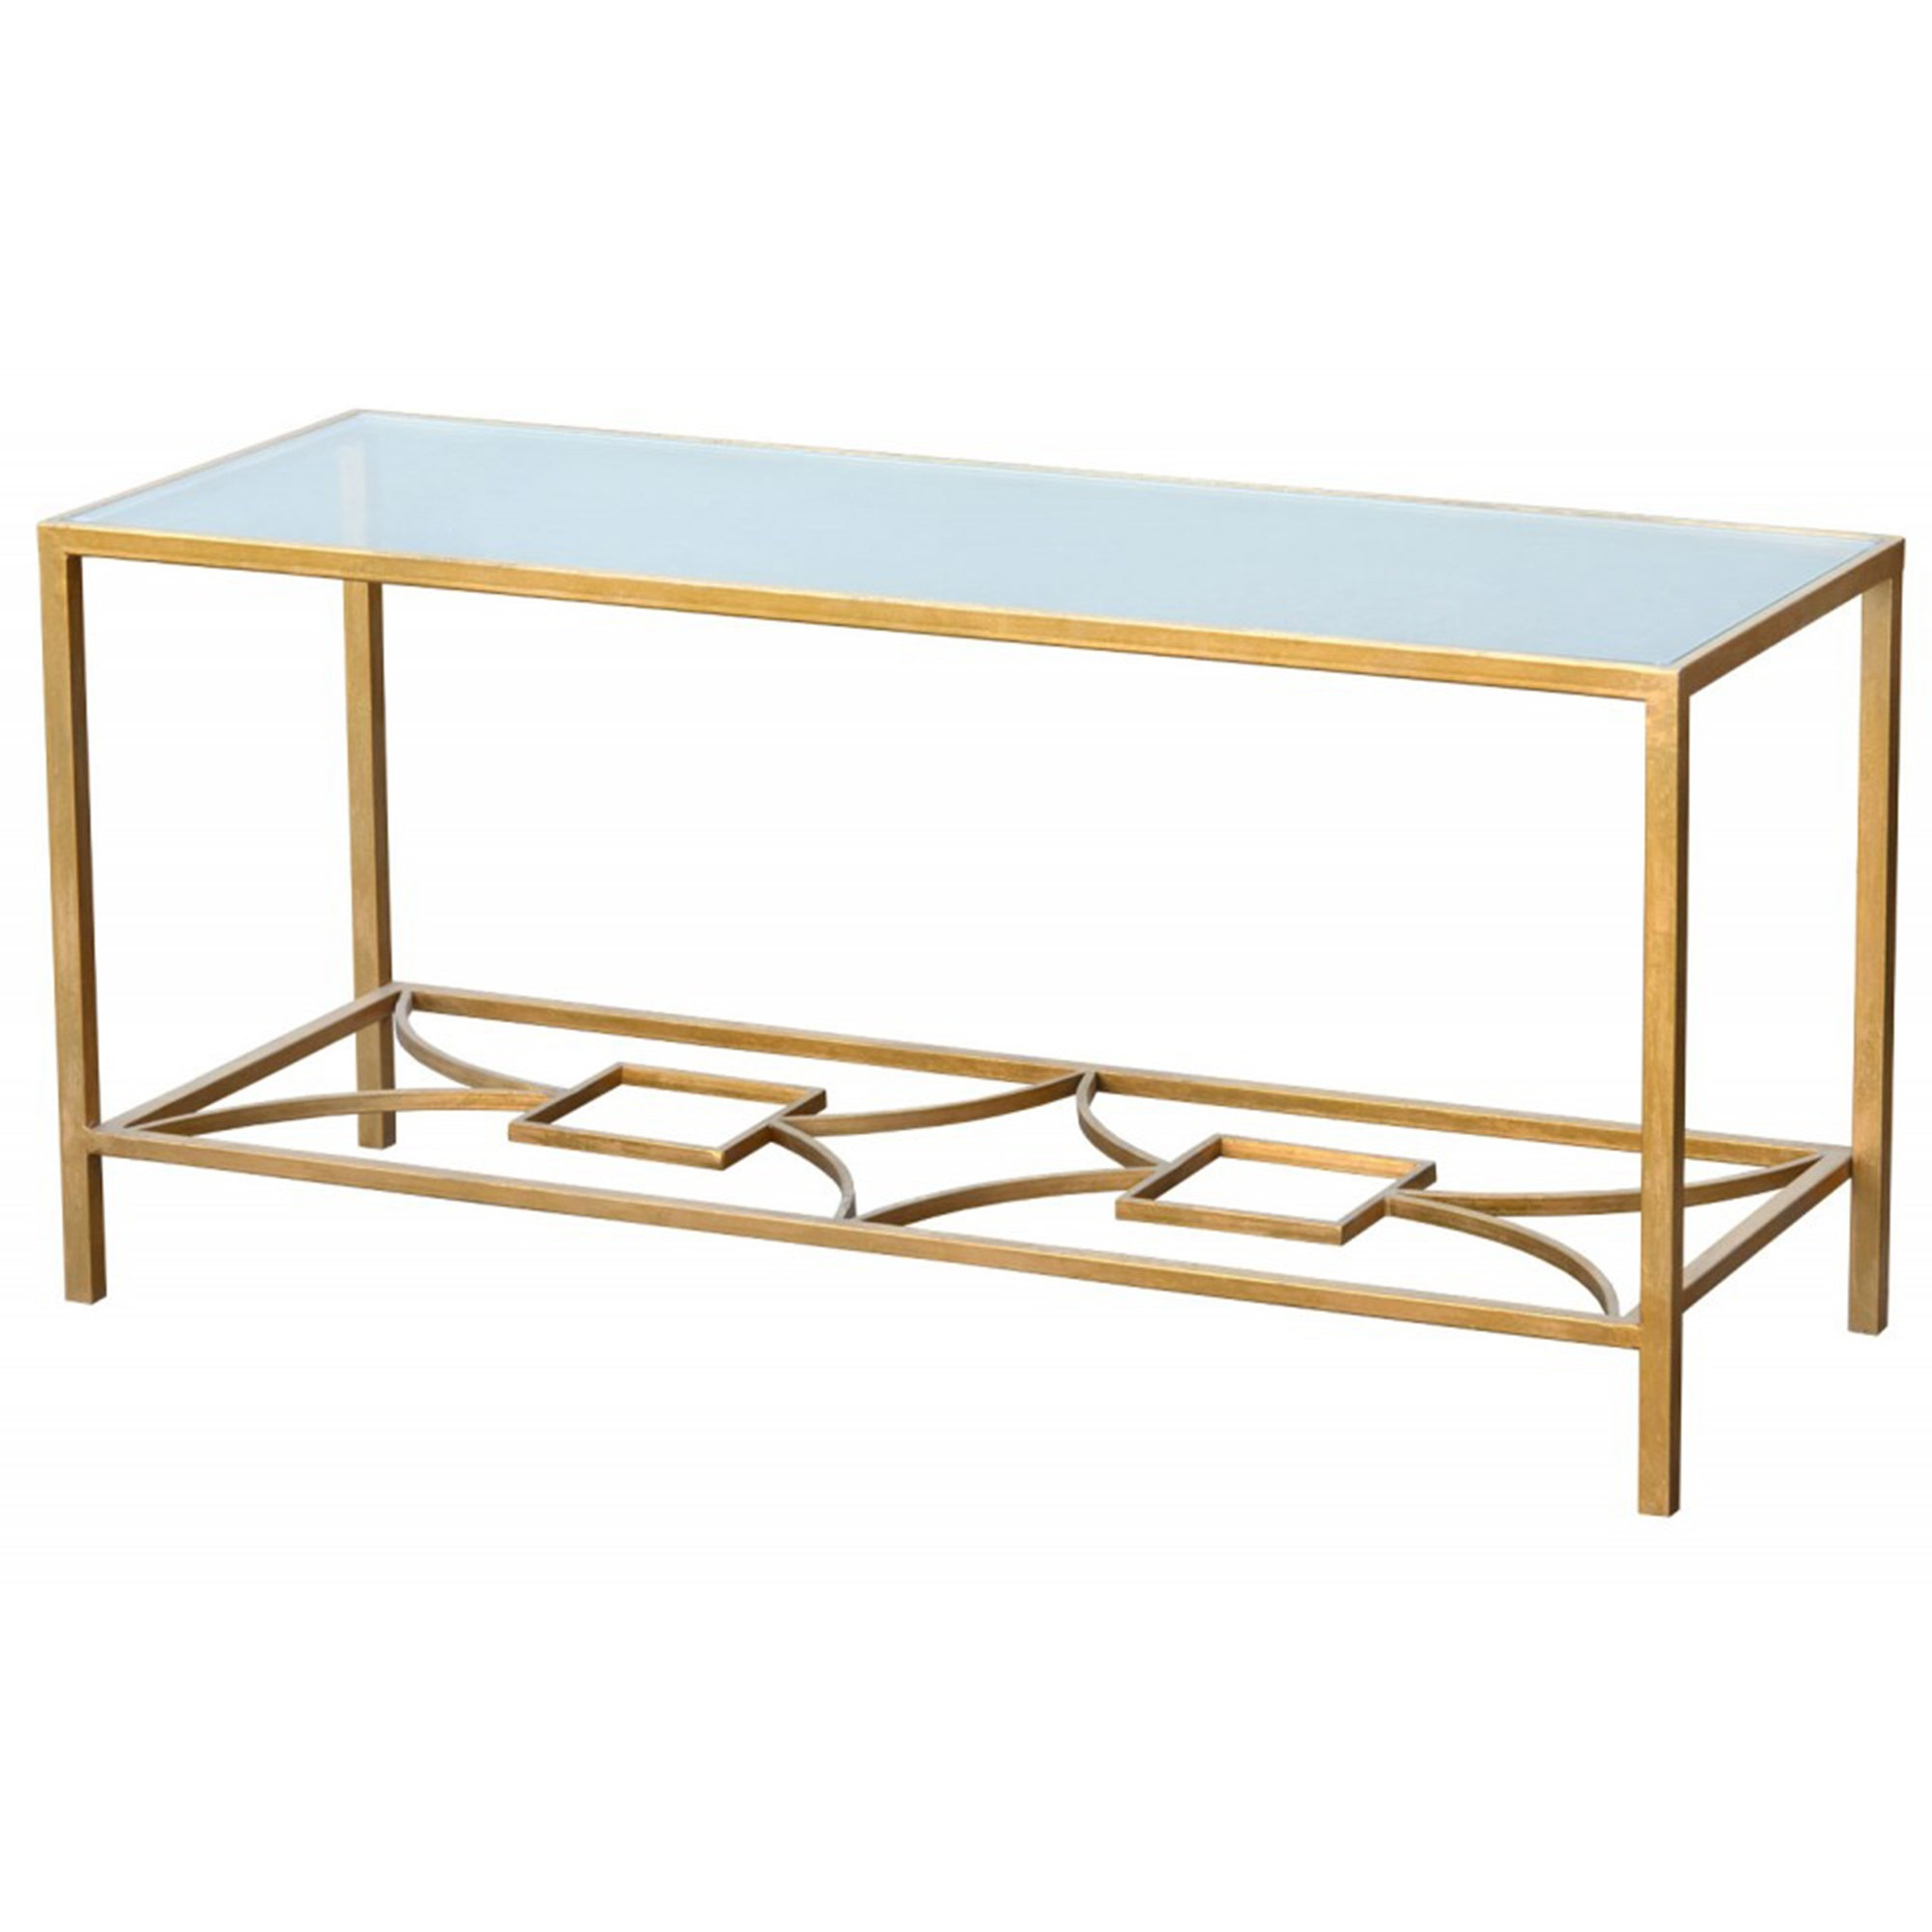 Gin shu parisienne art deco console table french furniture from homesdirect 365 uk - Deco table paris ...